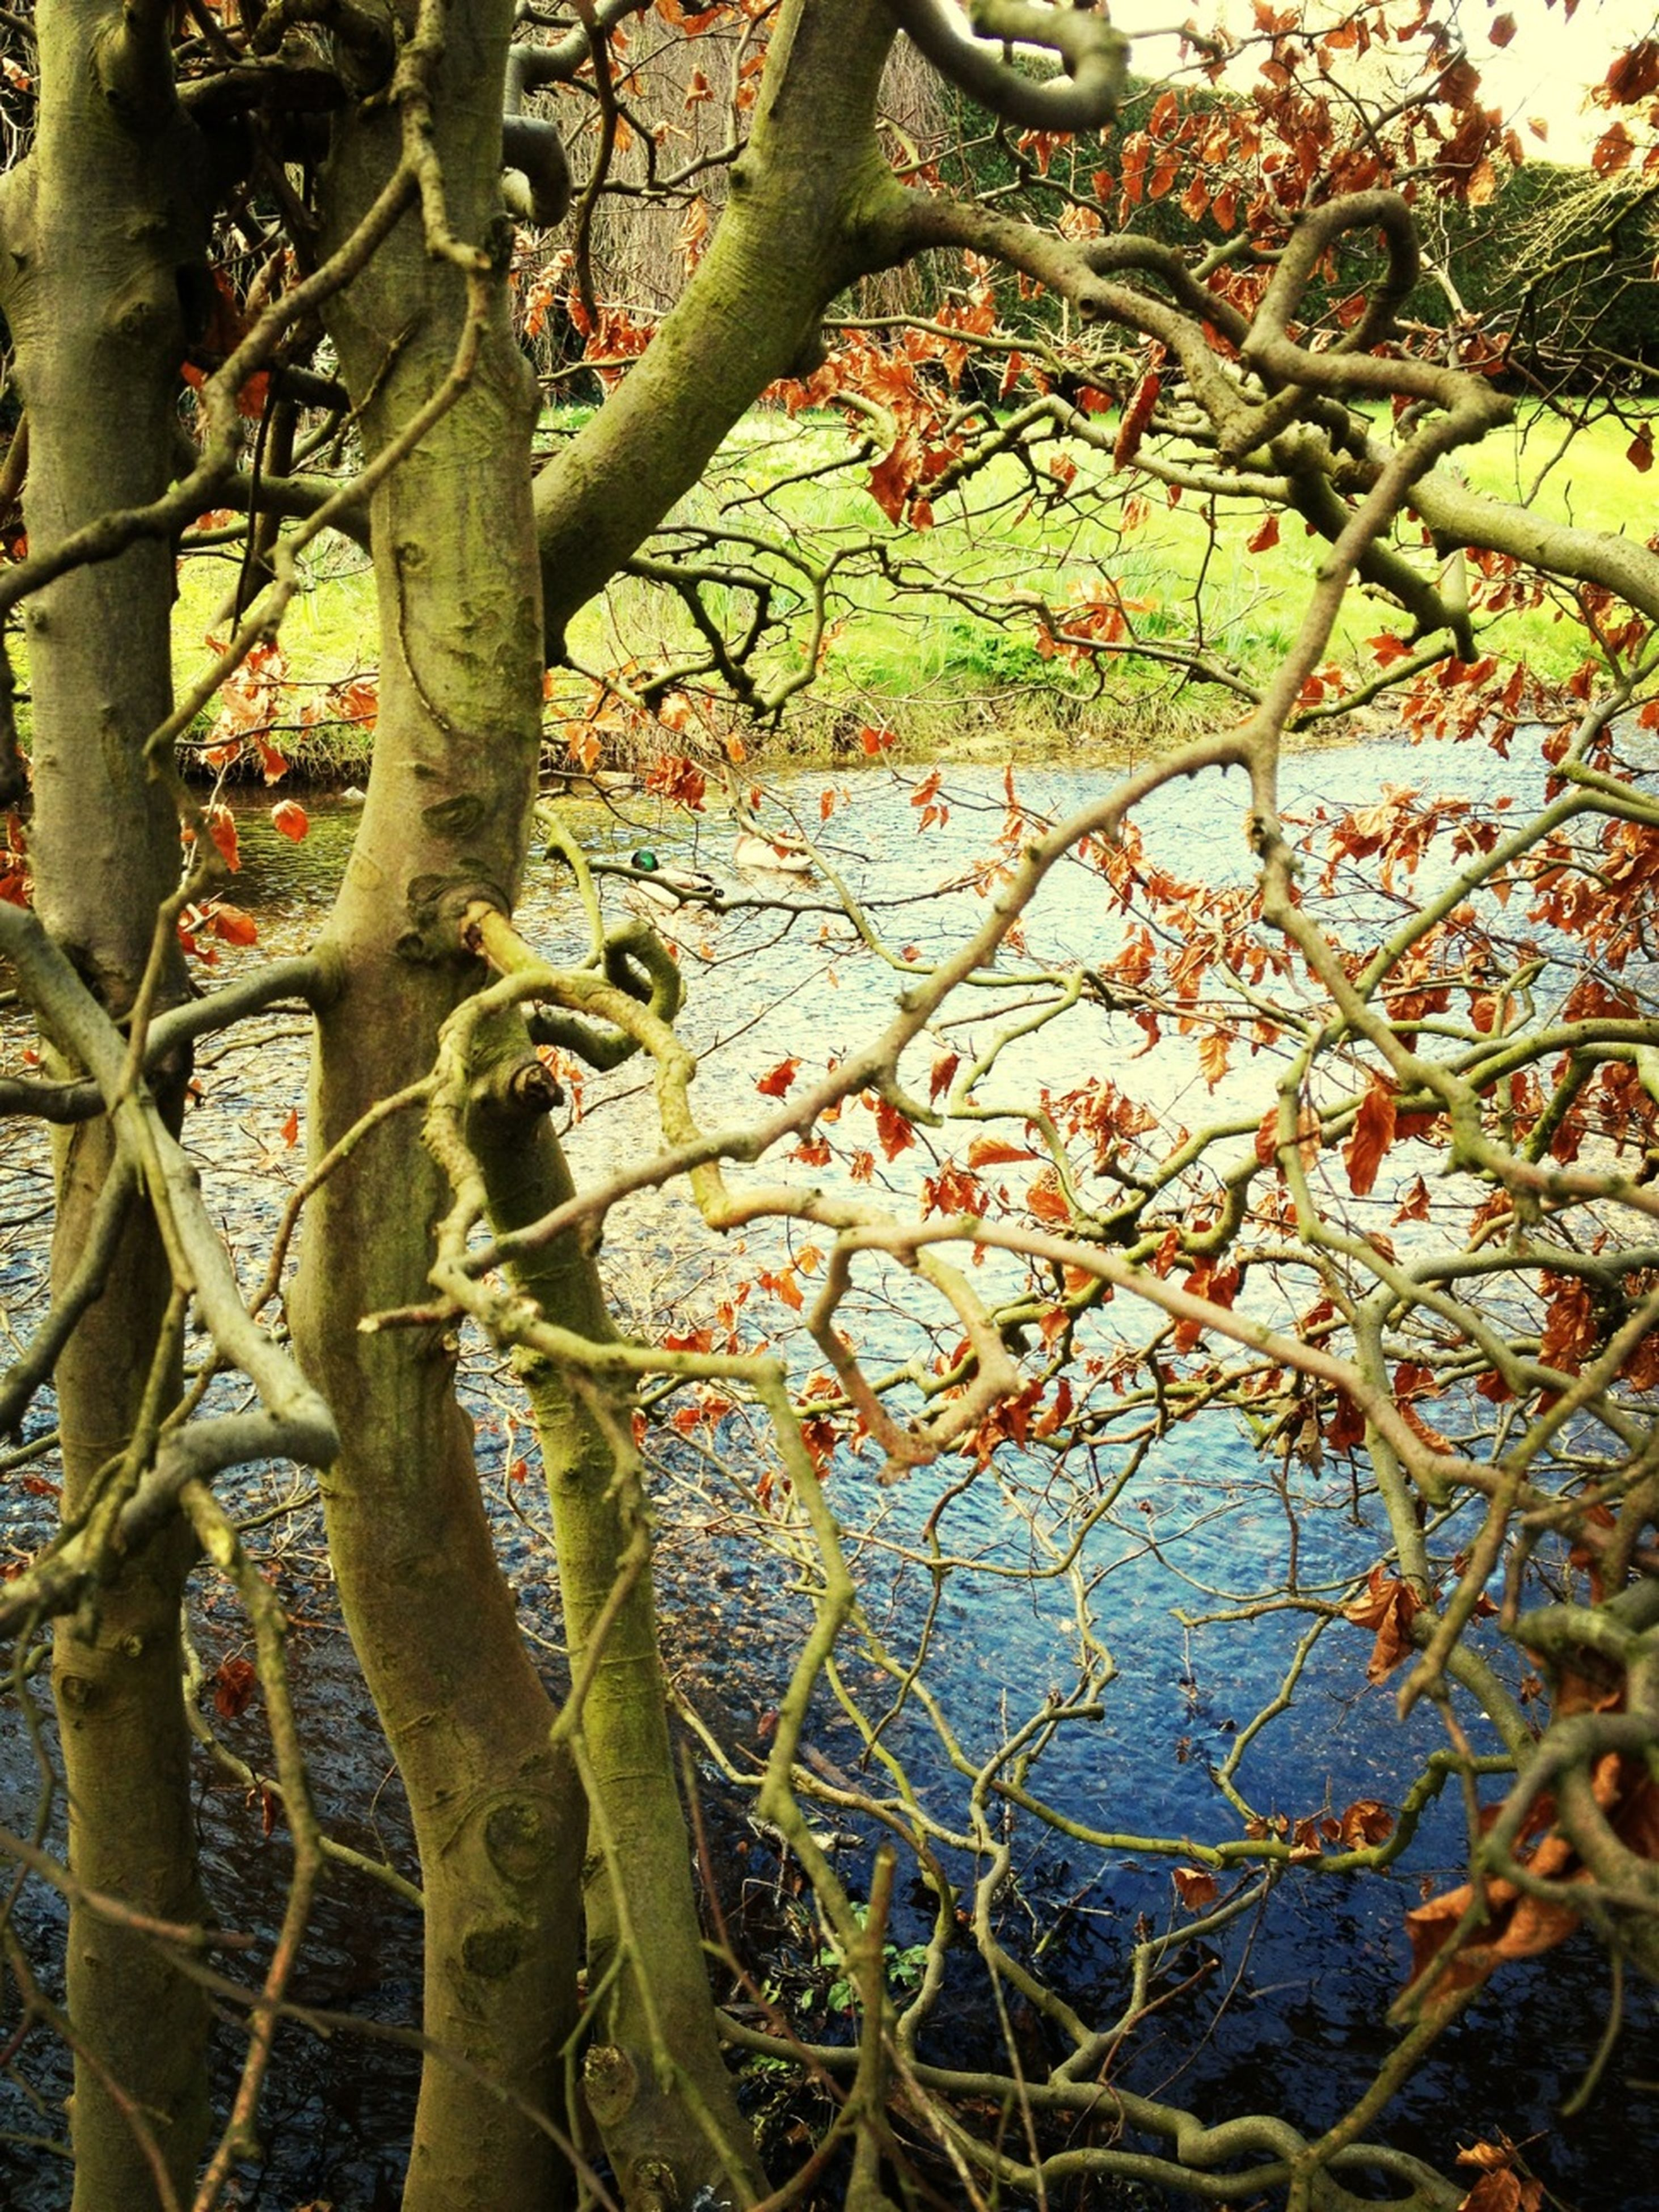 branch, tree, growth, leaf, nature, tree trunk, tranquility, beauty in nature, plant, water, day, bare tree, outdoors, no people, autumn, twig, close-up, scenics, growing, lake